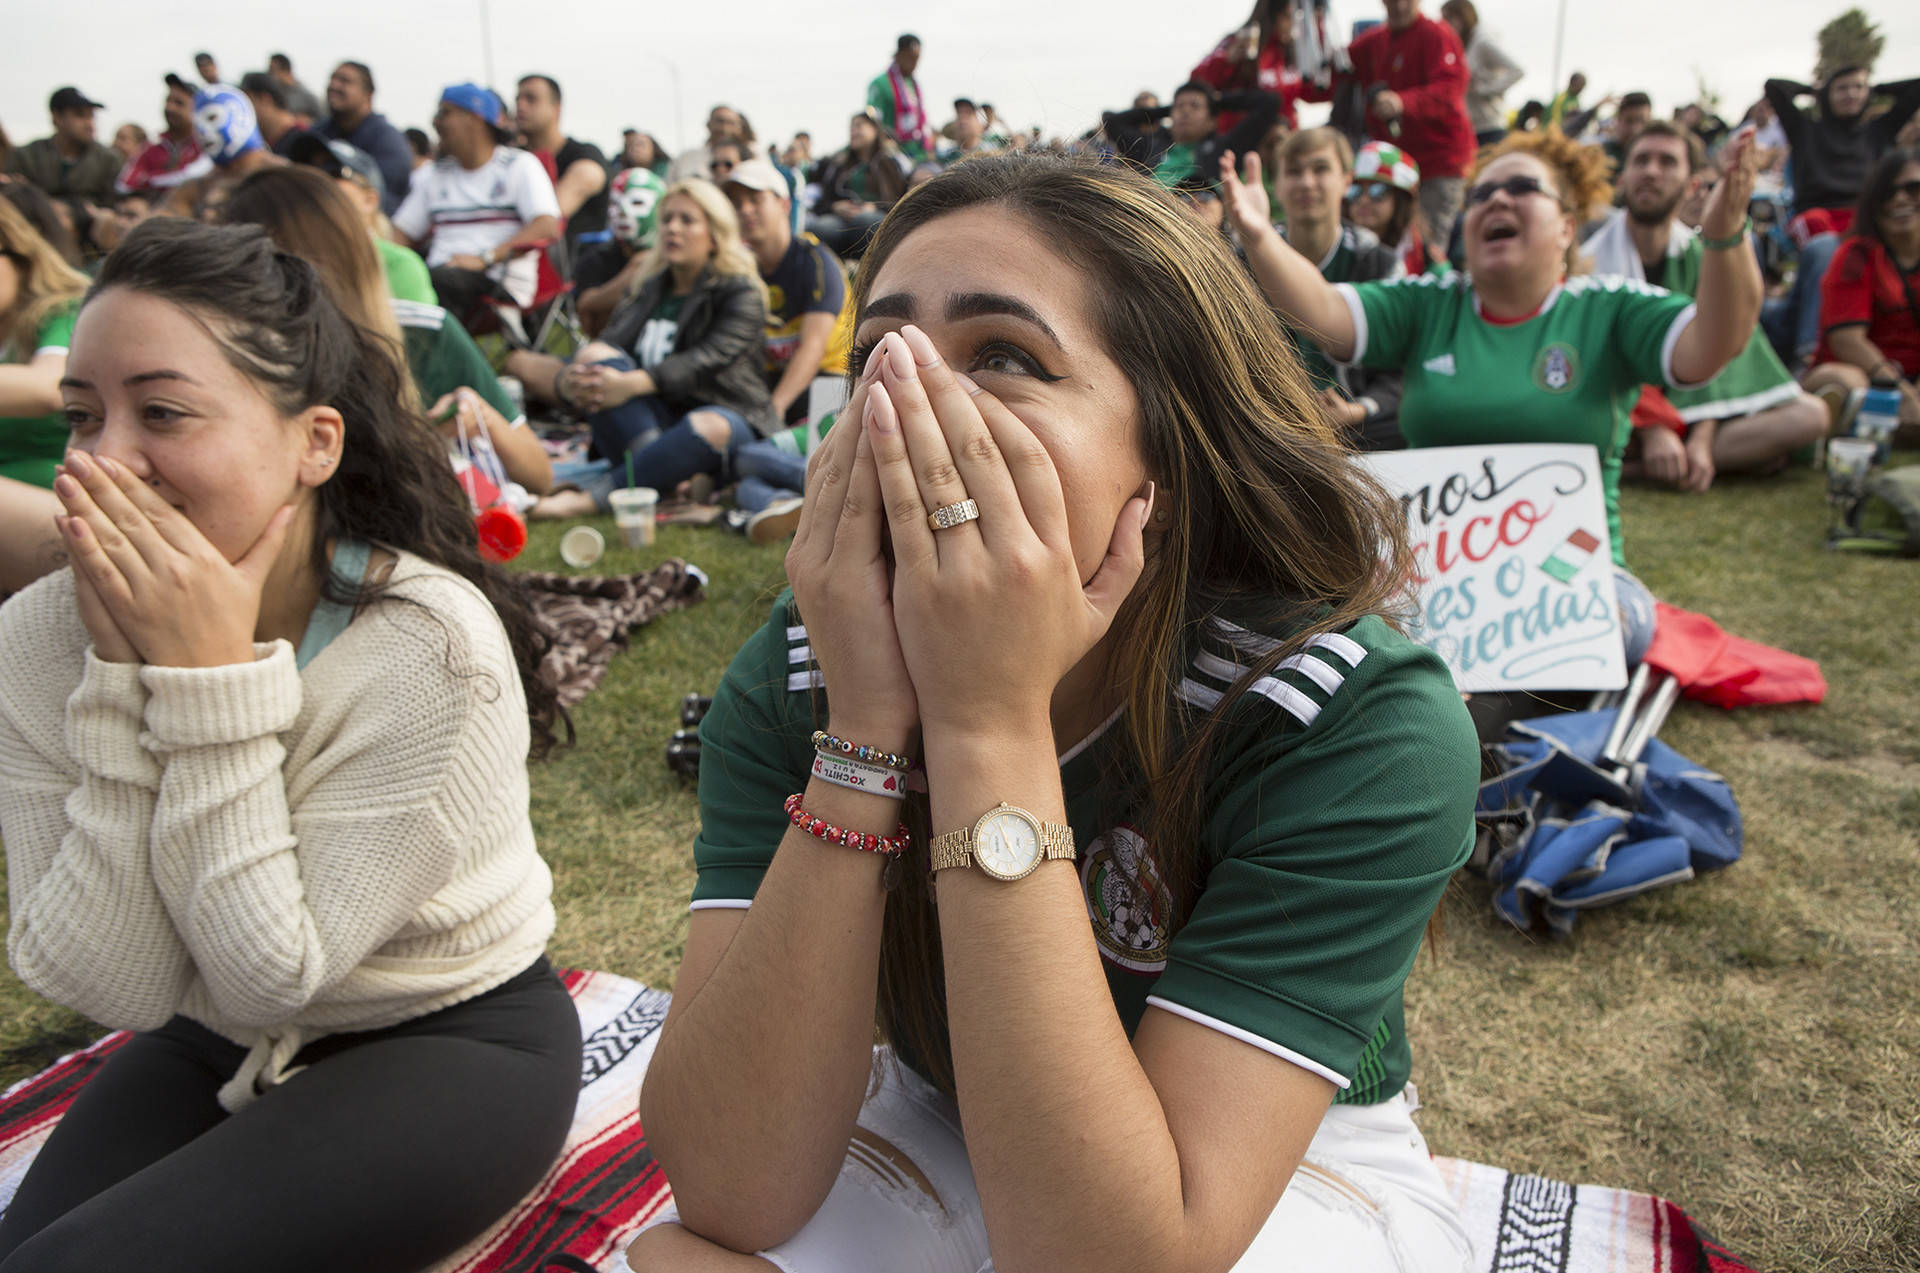 """Sunnyvale resident Nancy C. Silva expresses shock at the second goal by Brazil. """"I'm heartbroken,"""" she said. """"We're still proud of our team, we're always here to support."""" Anne Wernikoff/KQED"""